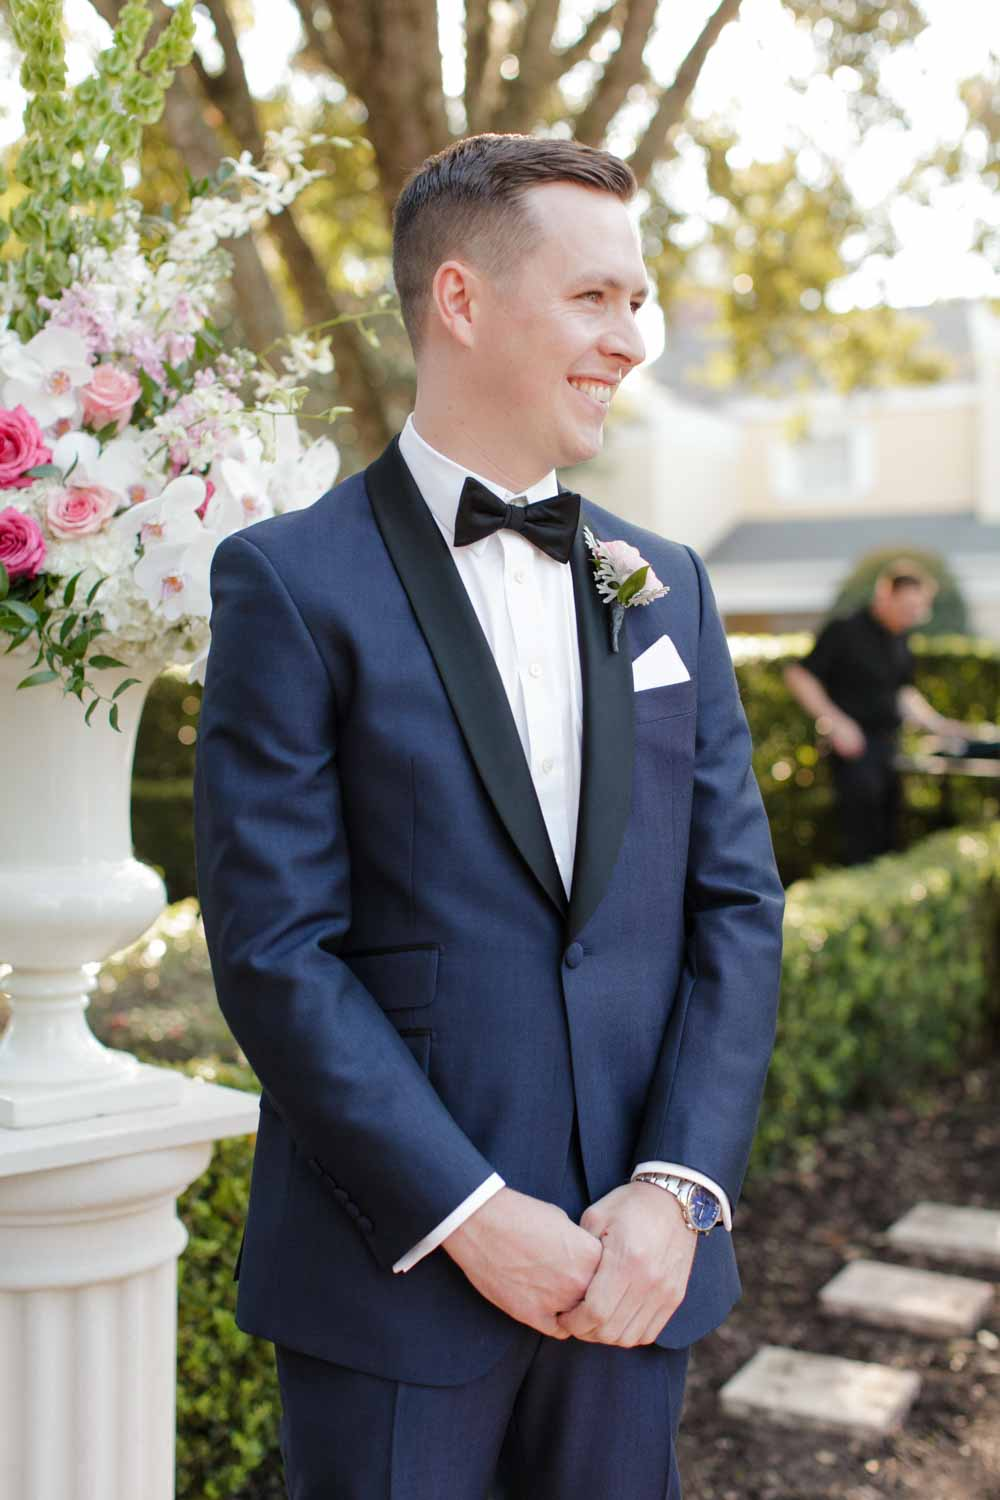 groom in navy tux smiling as bride walks up aisle